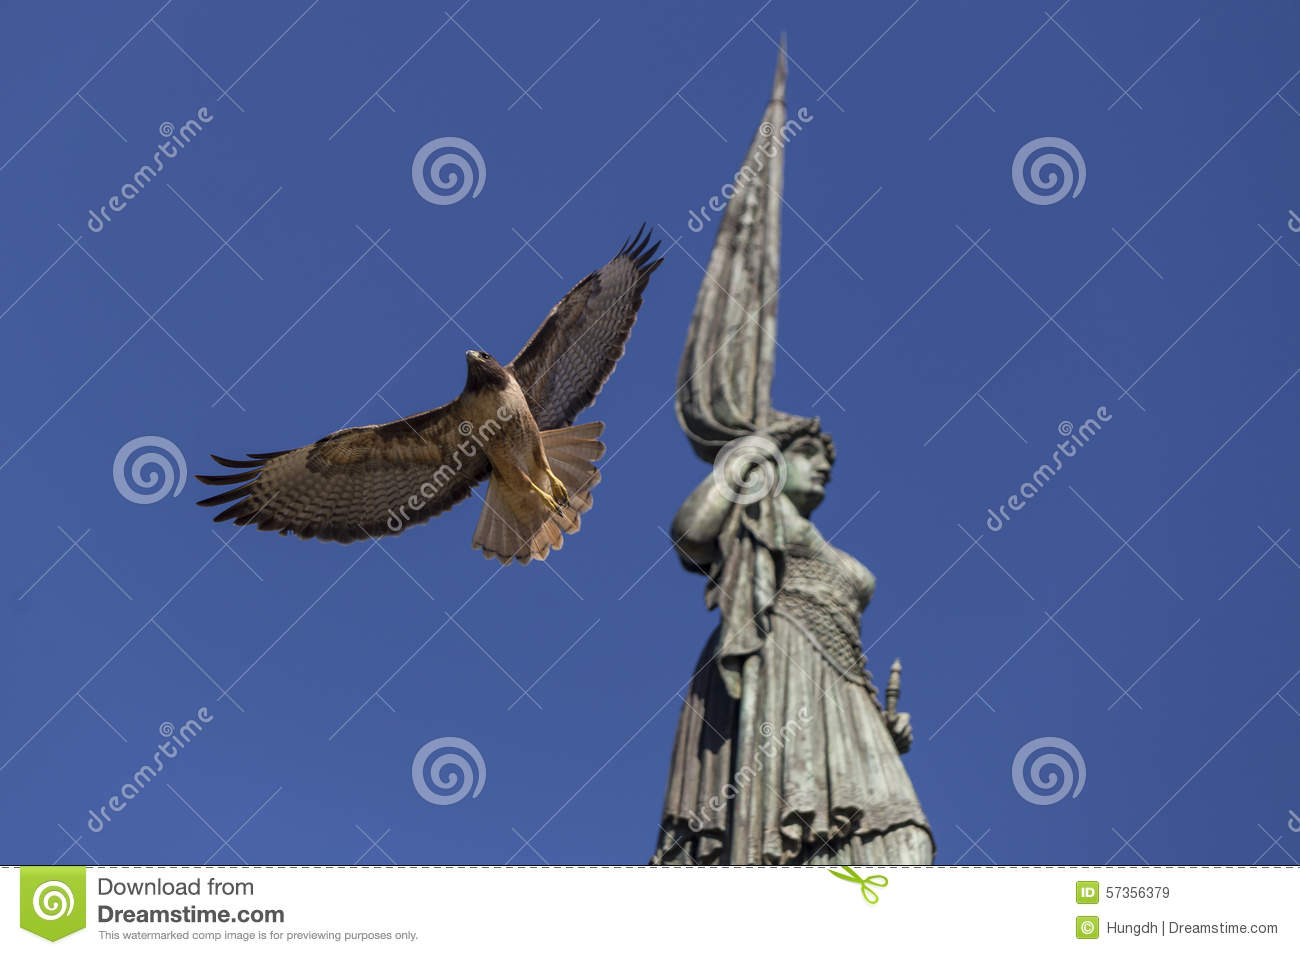 Eagle Flying Pass By Statue Stock Image - Image of flying, eagle